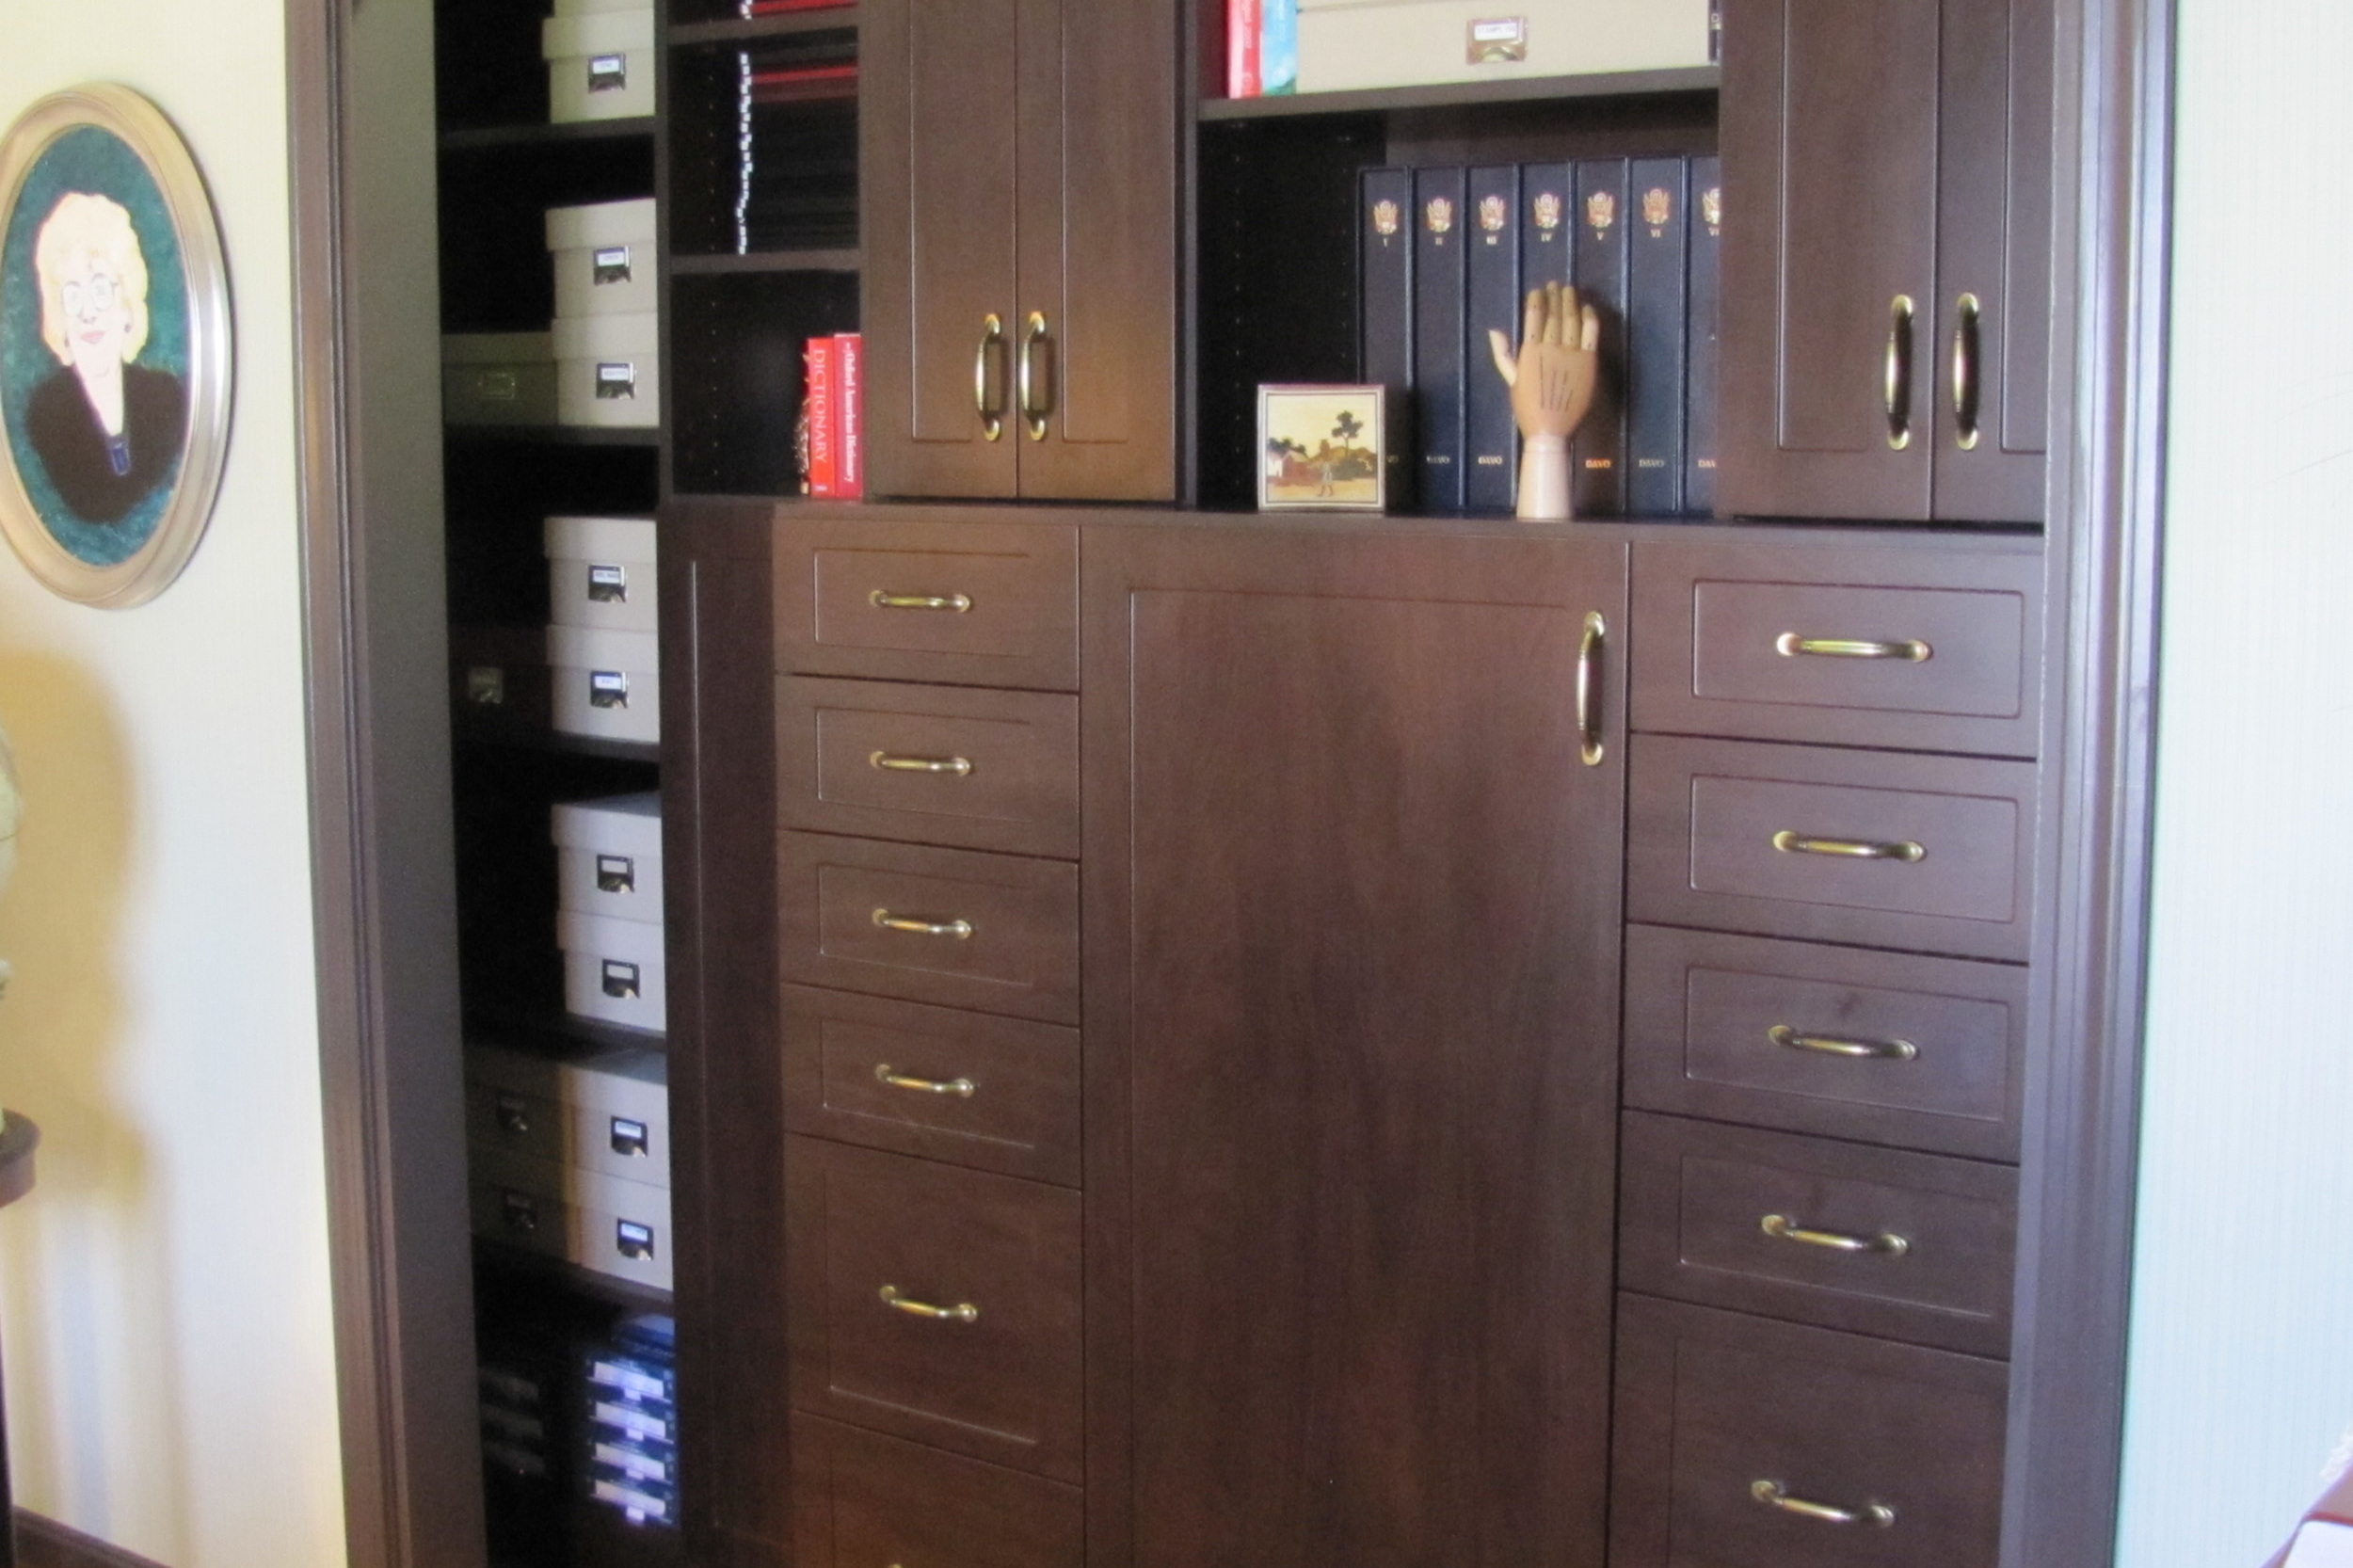 ChocolatePear-wood_OfficeCloset_SpecializedDrawers.JPG